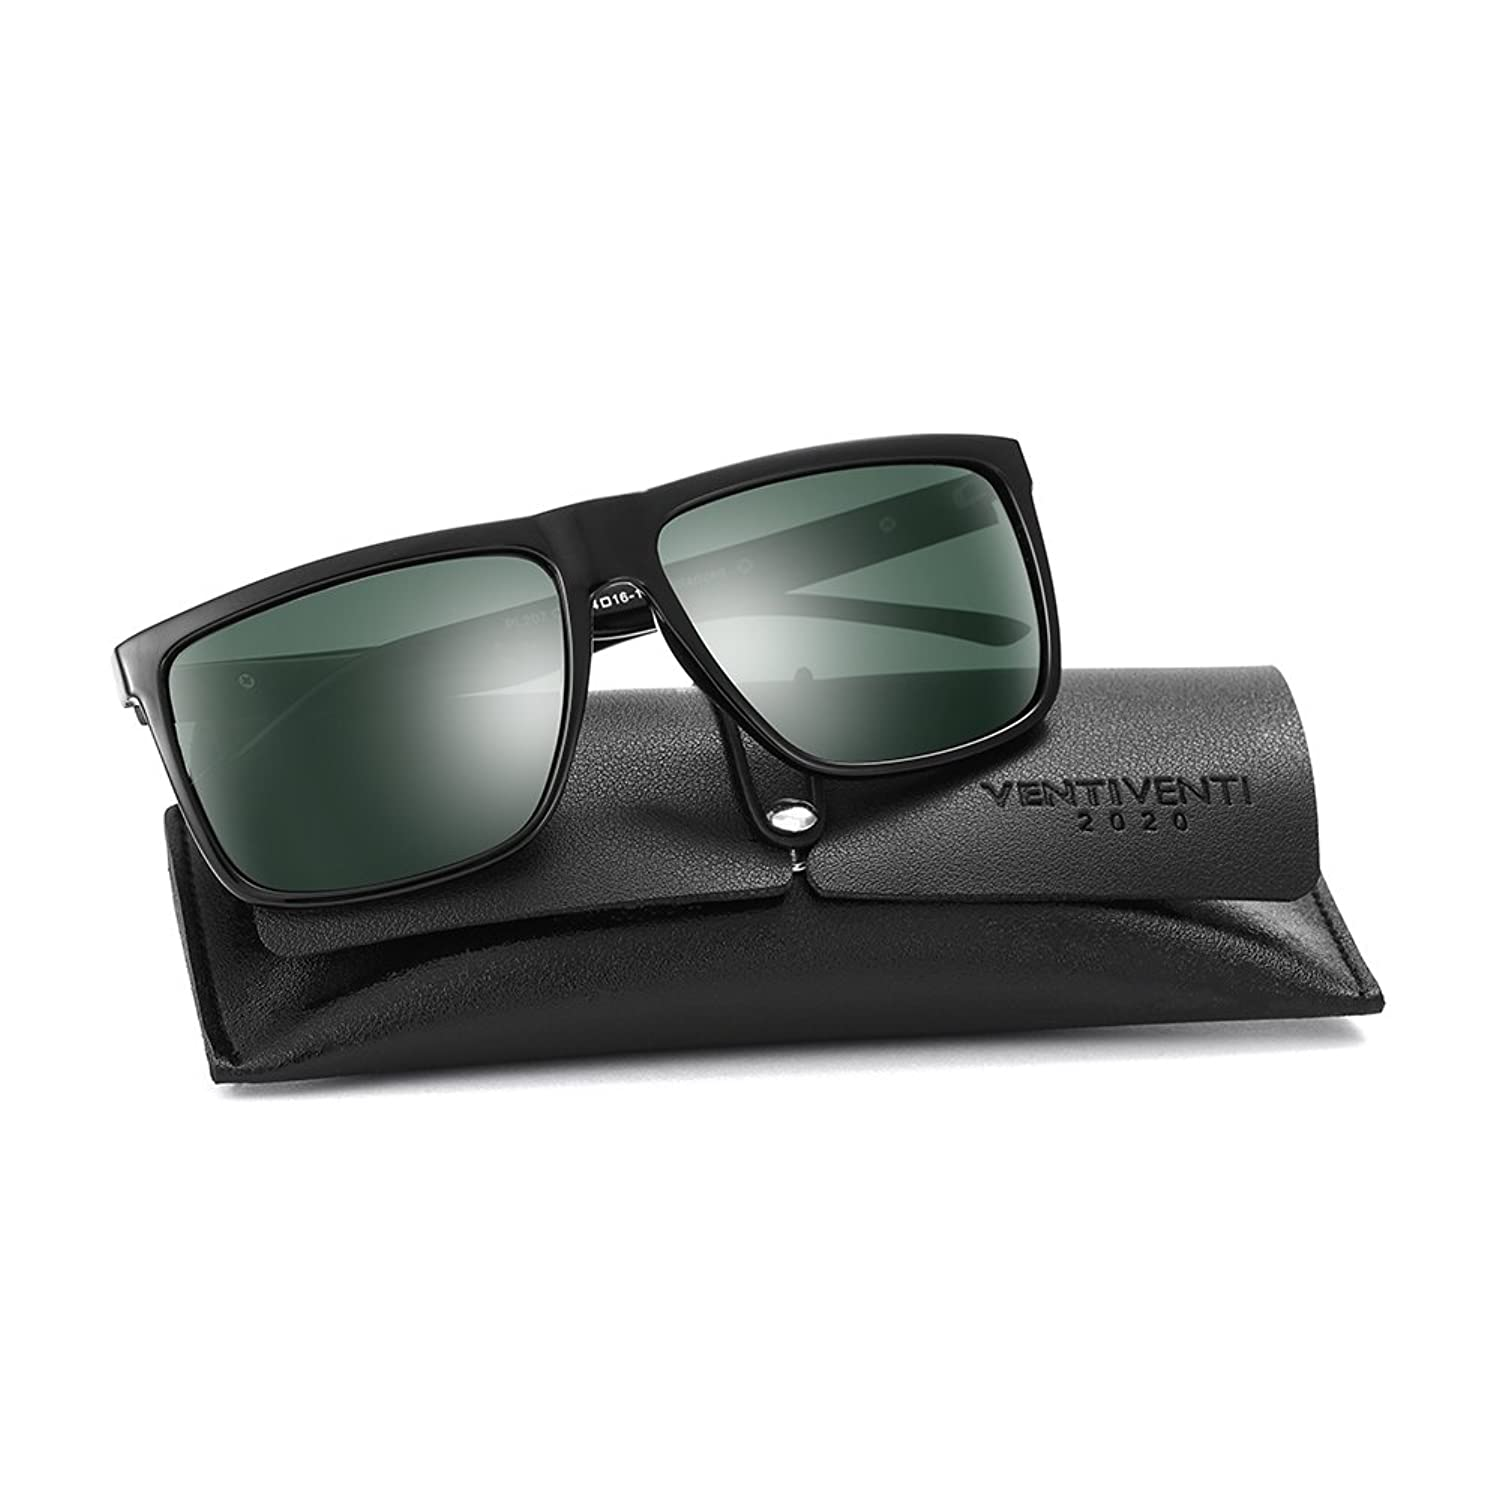 a8a1e30275fe plastic frame. Polycarbonate lens. Polarized Lens width: 2.24in 57  millimeters. Lens height: 1.77in 45mm millimeters. Bridge: 0.67in 17mm  millimeters